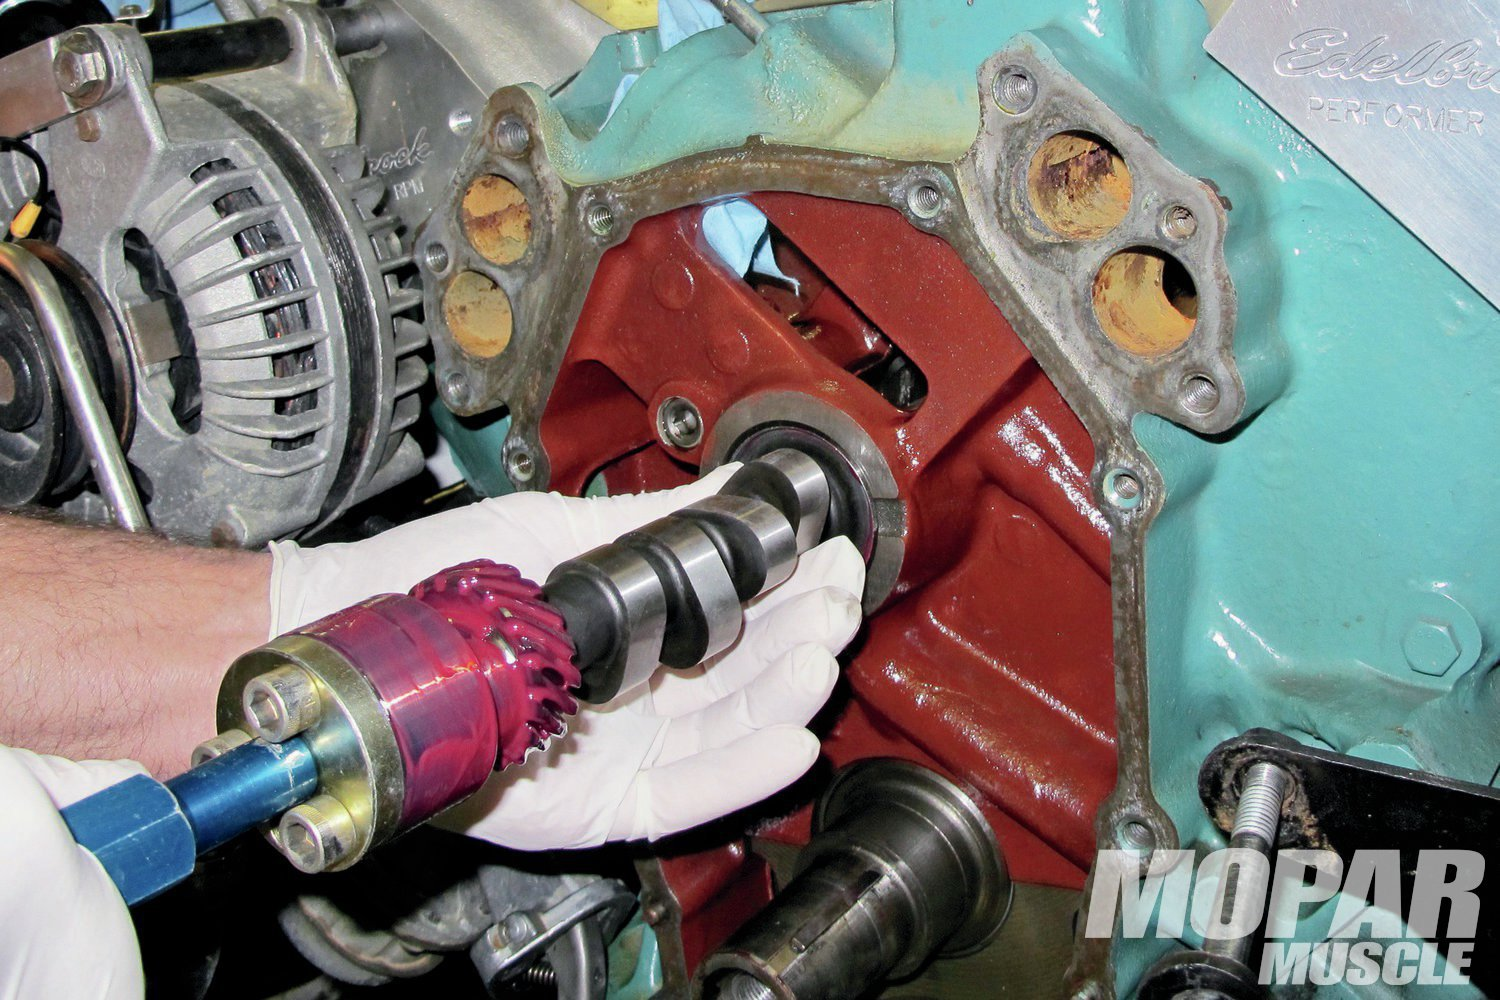 02 The new stick was lightly coated with Comp's cam and installation lube (part number 153).We were extra careful not to nick the cam bearings while removing the old and installing the new bumpstick. Seen is the Camshaft Installation Handle (PN 5311) we've been using for over 15 years in all of our cam swaps and installations. This tool helps save time, pinched fingers and nicked cam bearings.